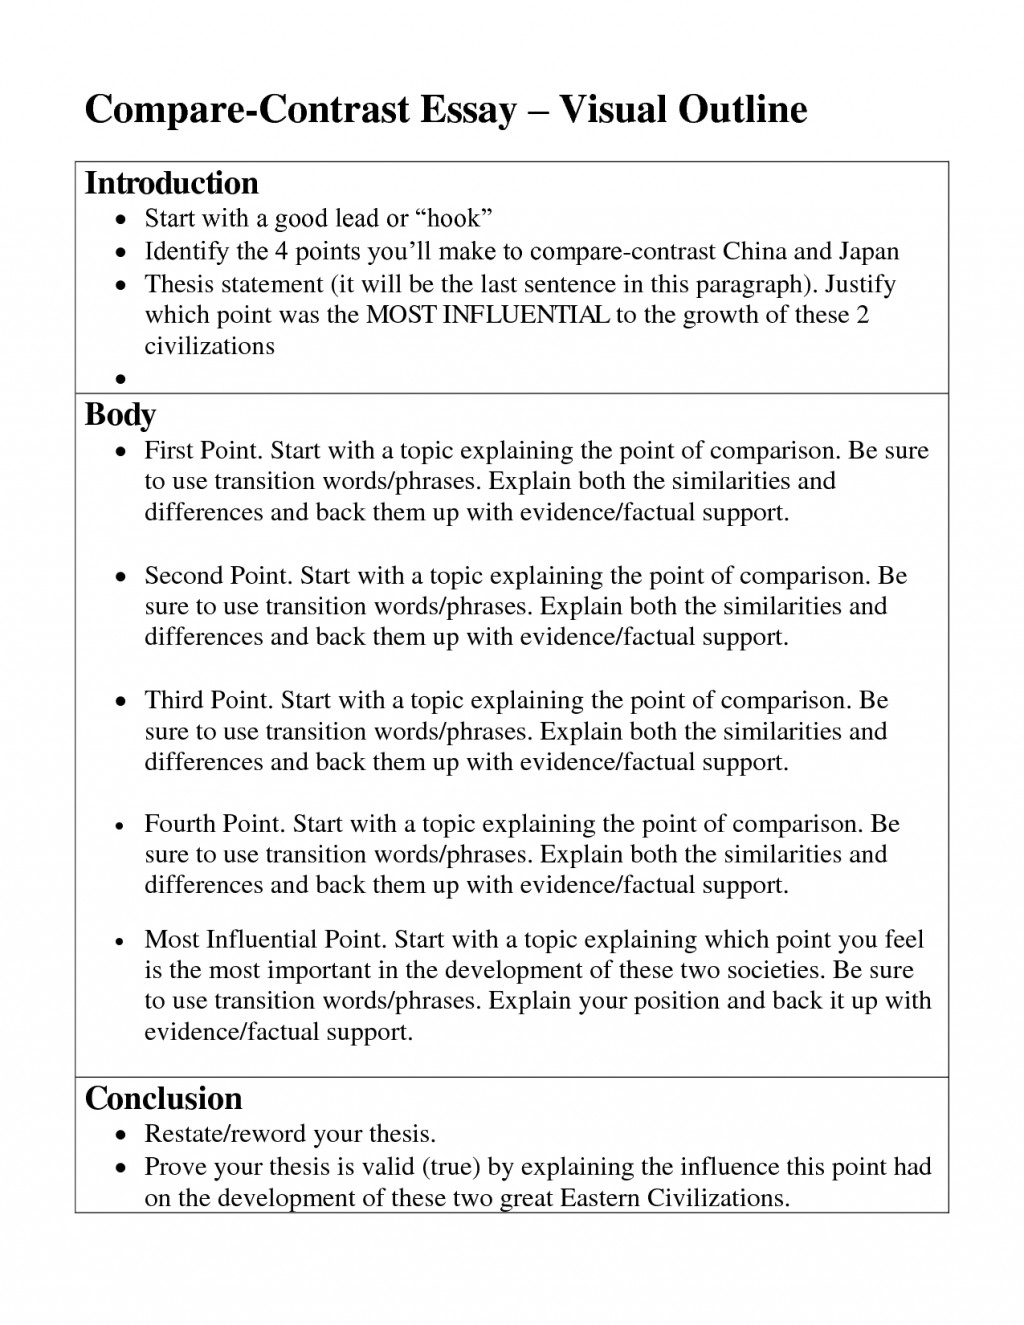 007 How To Conclude Compare And Contrast Essay Example Fantastic A Start Writing Comparison Write Begin Large